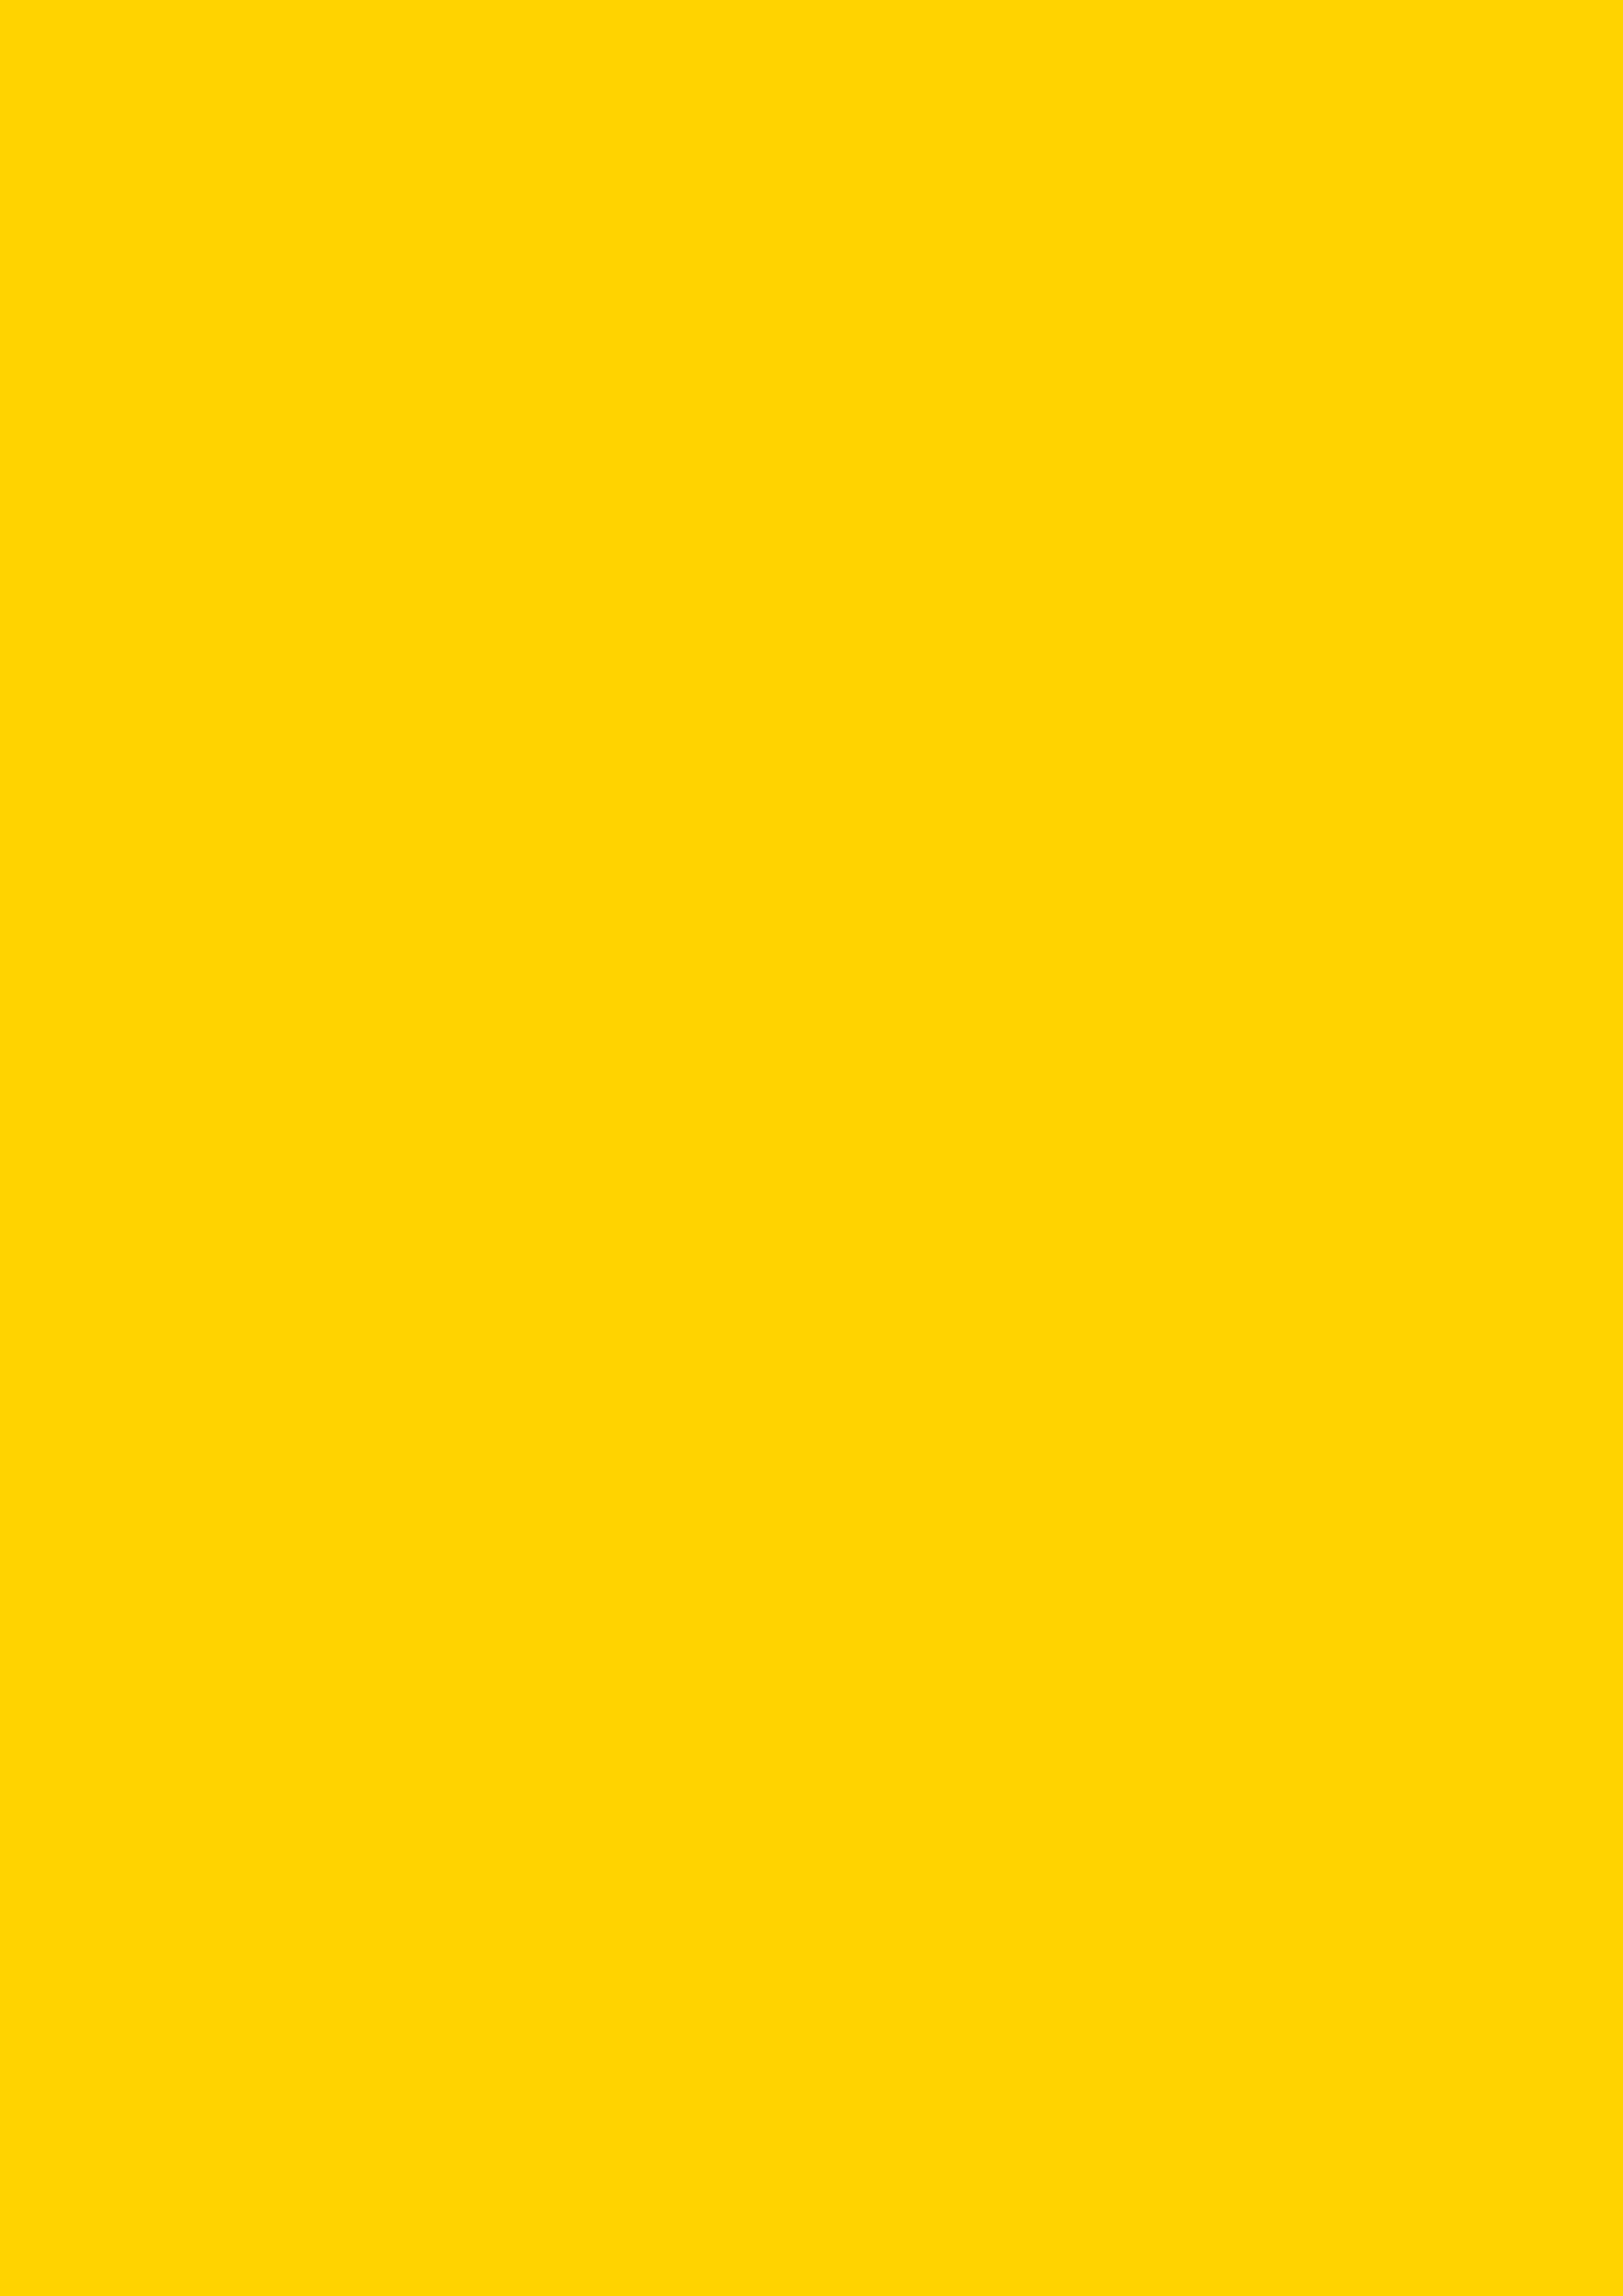 2480x3508 Cyber Yellow Solid Color Background